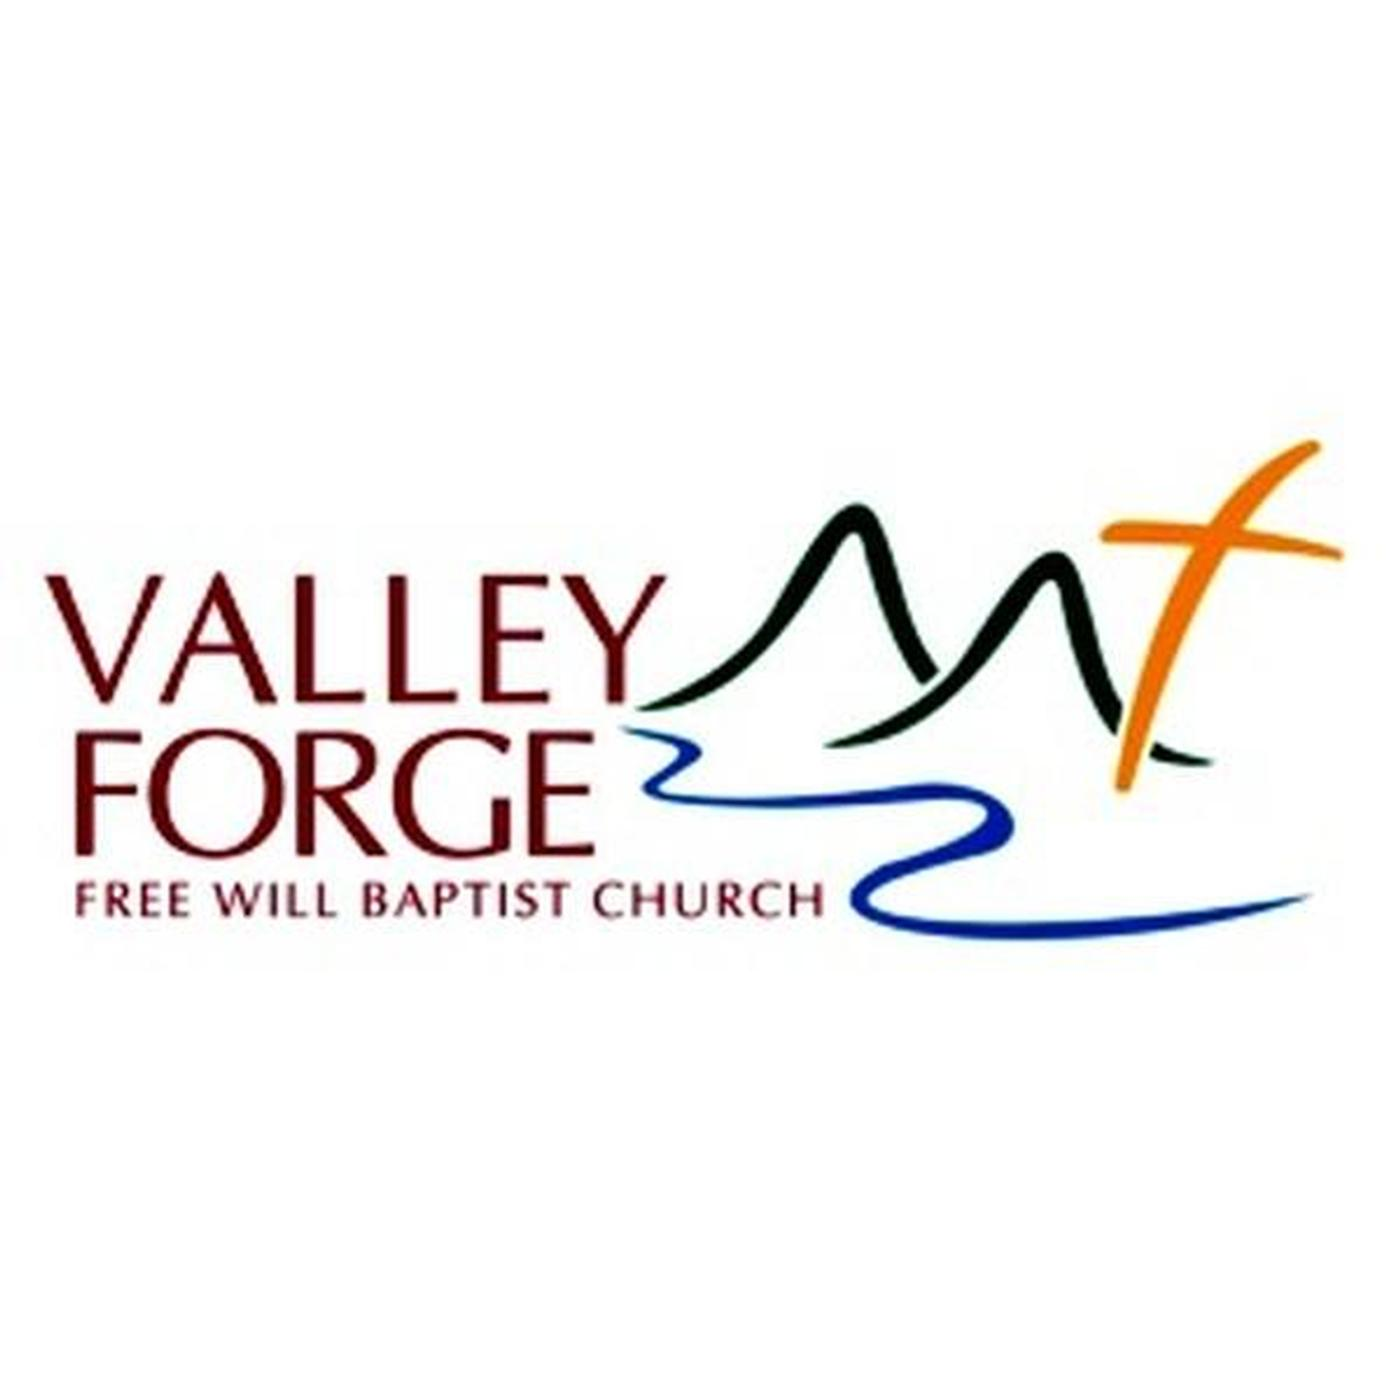 Valley Forge Free Will Baptist Church